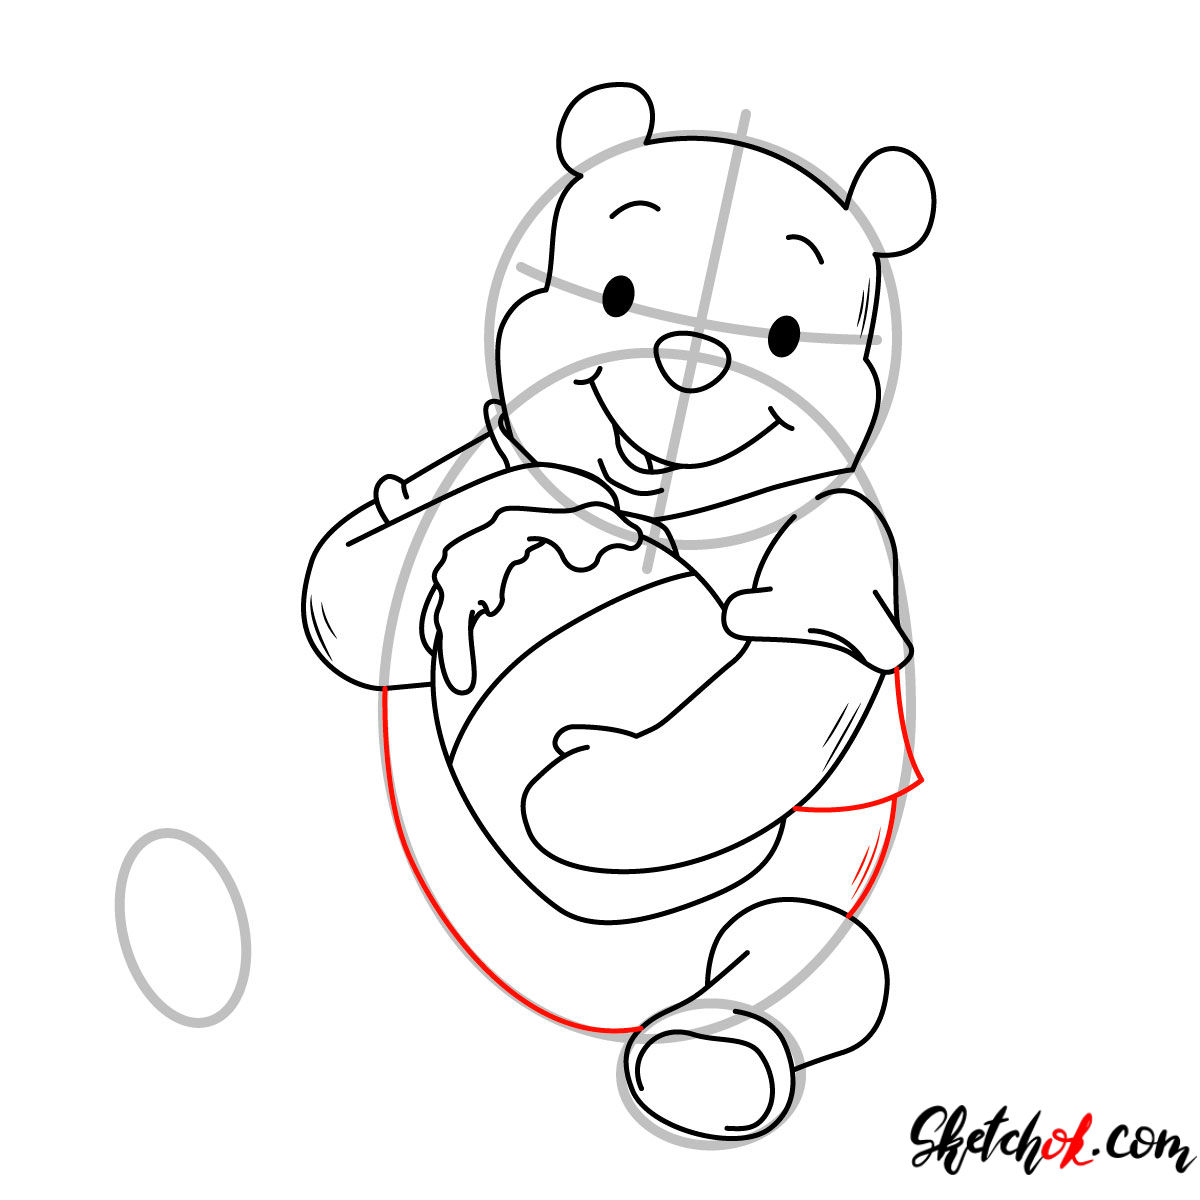 How to draw Winnie-the-Pooh eating honey - step 08